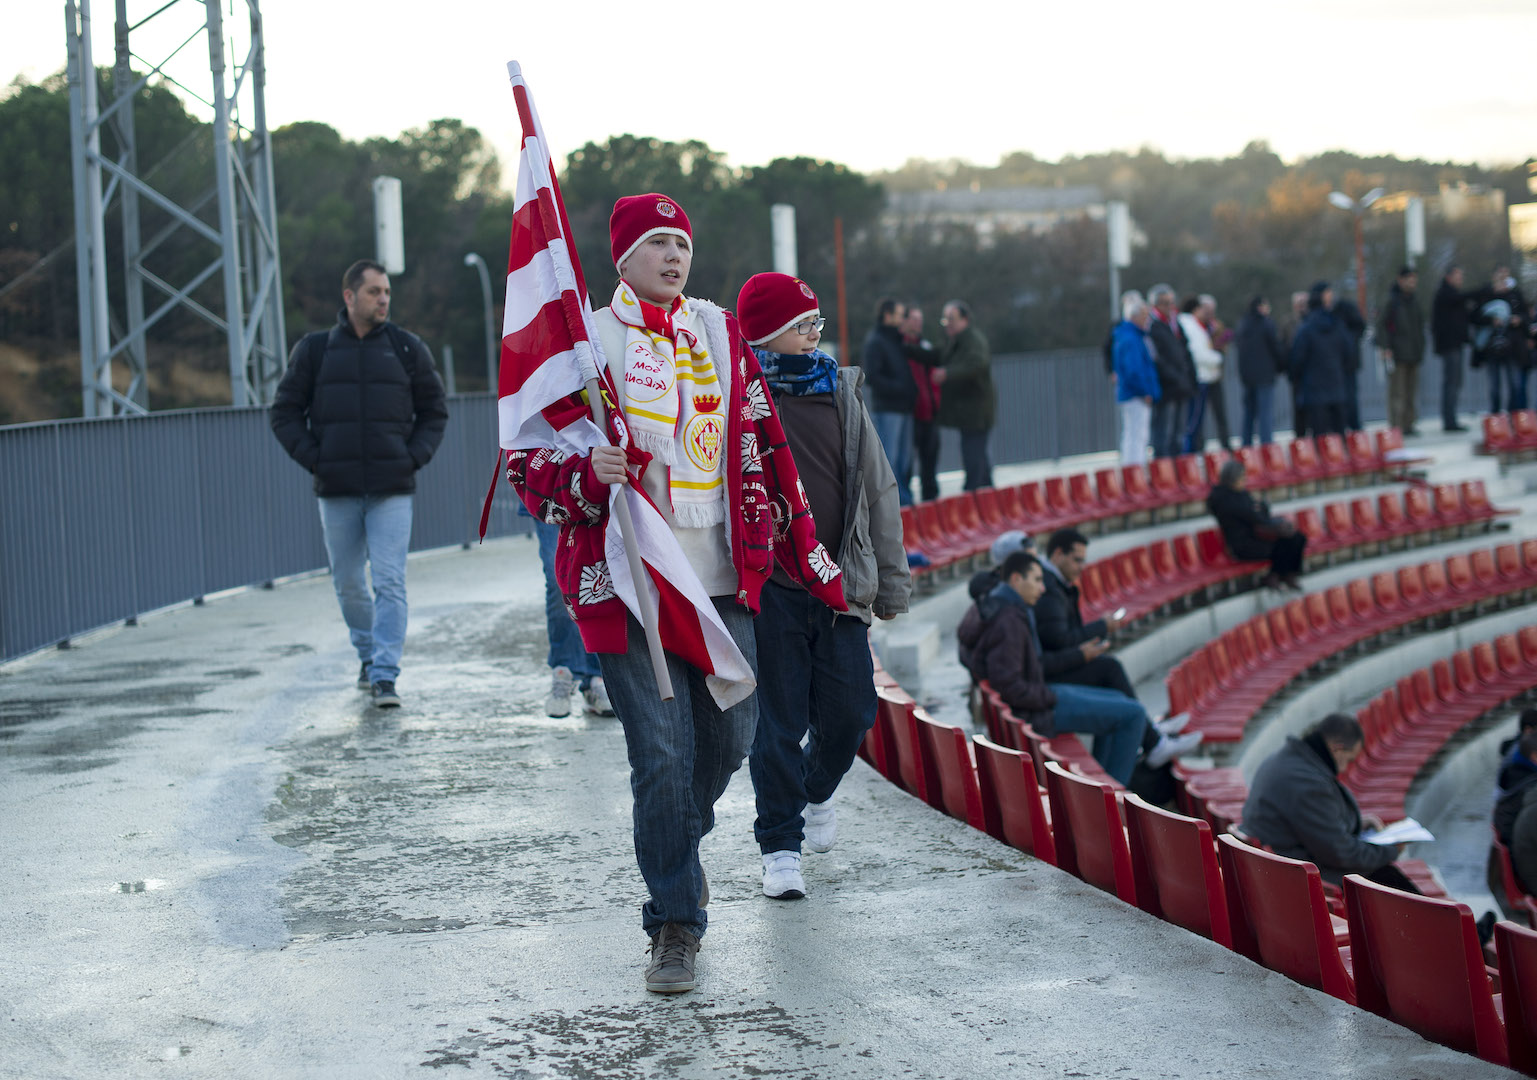 (L) vies with (R) during the Spanish second division league football match Girona FC vs SD Eibar at the municipal stadium of Montilivi in Girona on January 25, 2014. AFP PHOTO/ JOSEP LAGO